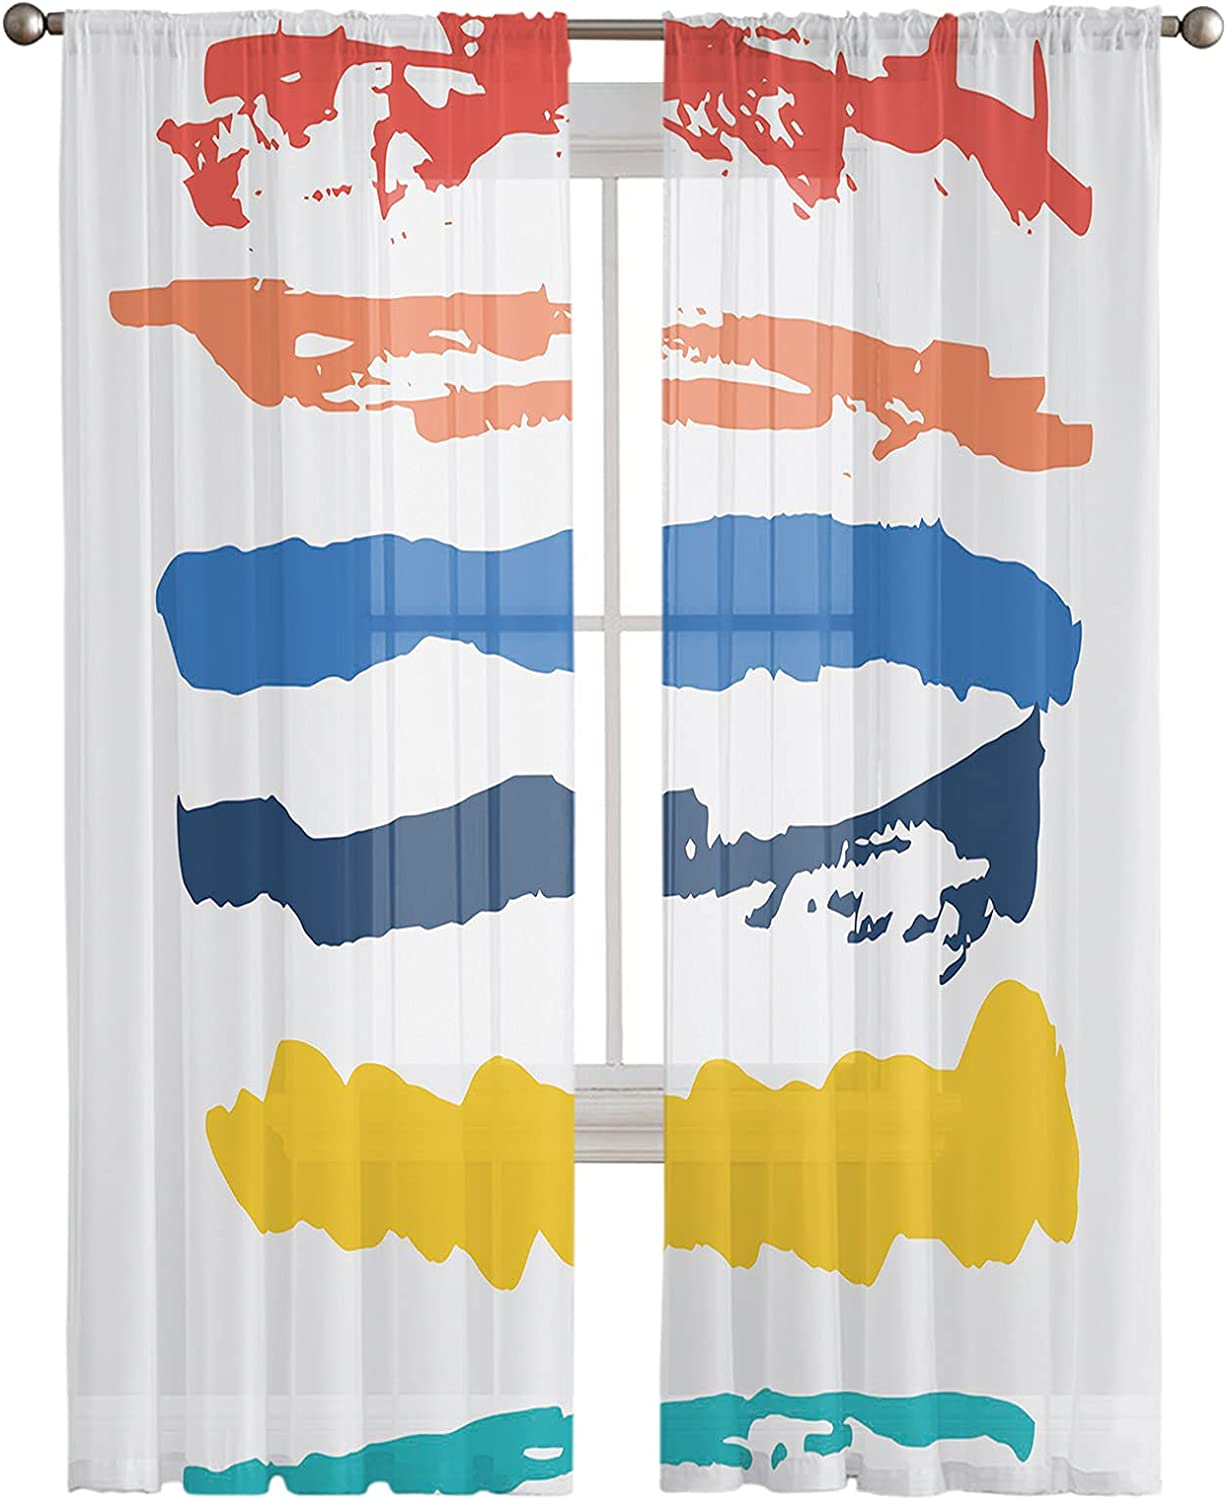 Kitchen Semi Large special price !! Sheer Window Curtain Colorfu Ranking TOP17 Inches 108 Panels Long